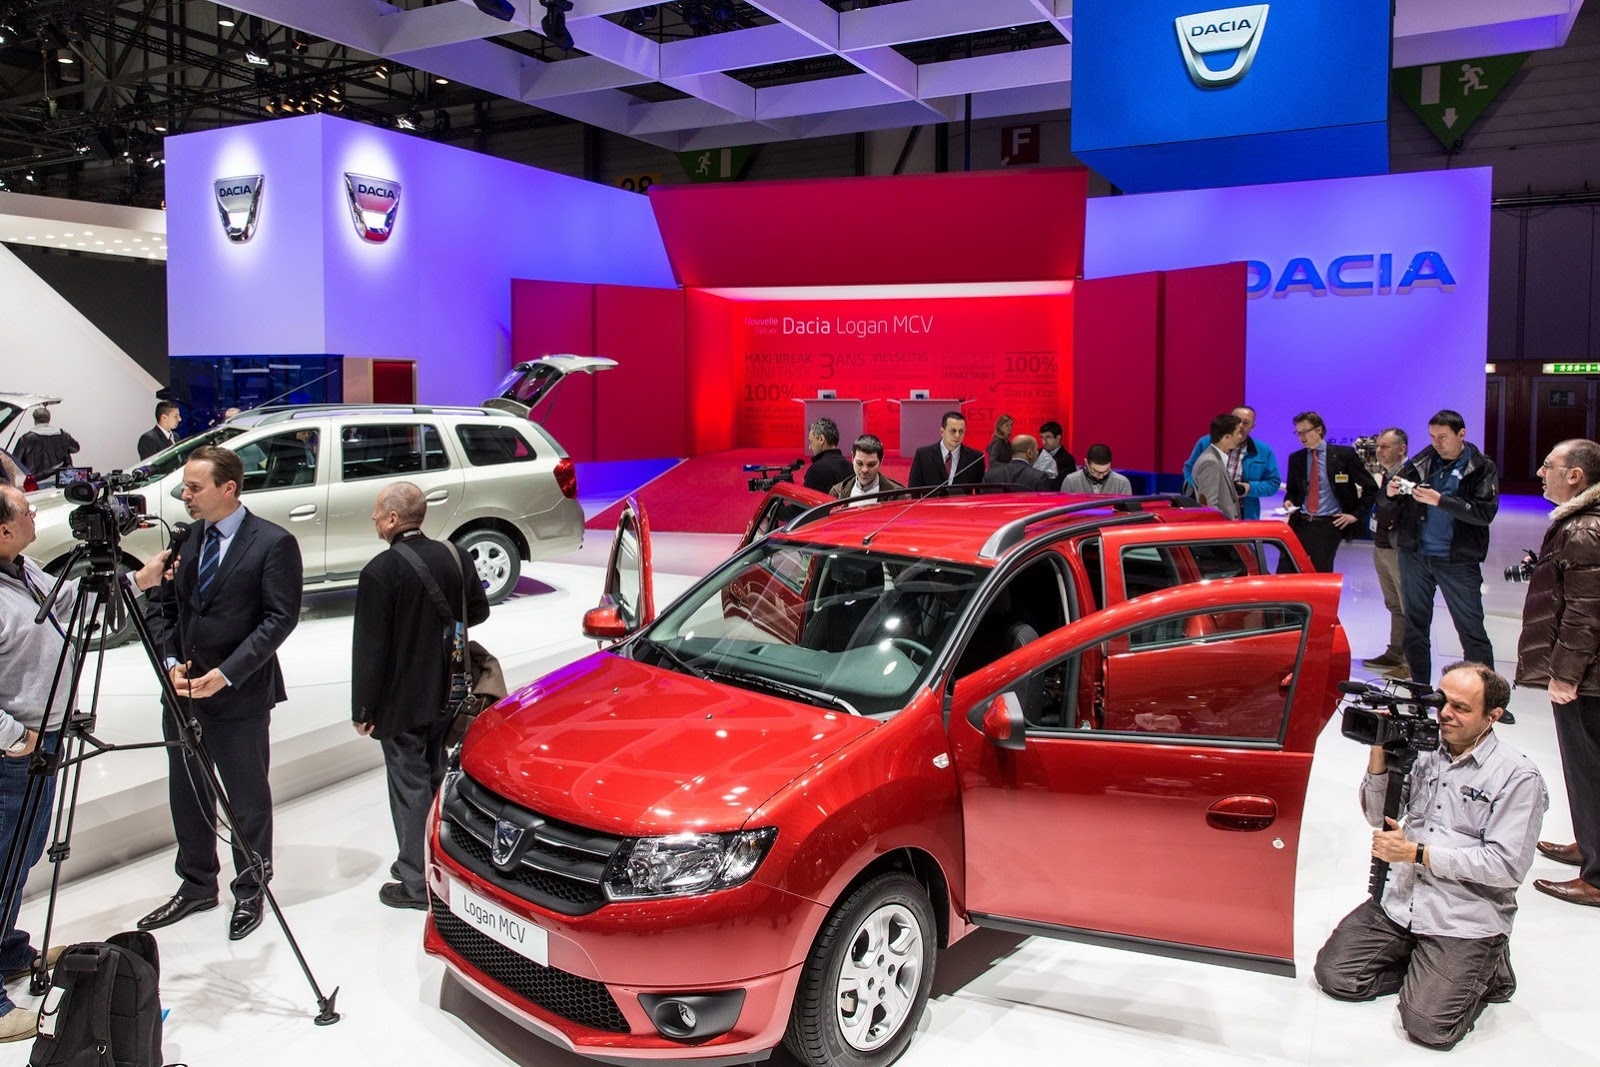 2014 Dacia Logan MCV Unveiled At Geneva Motor Show (Photo 6 of 7)